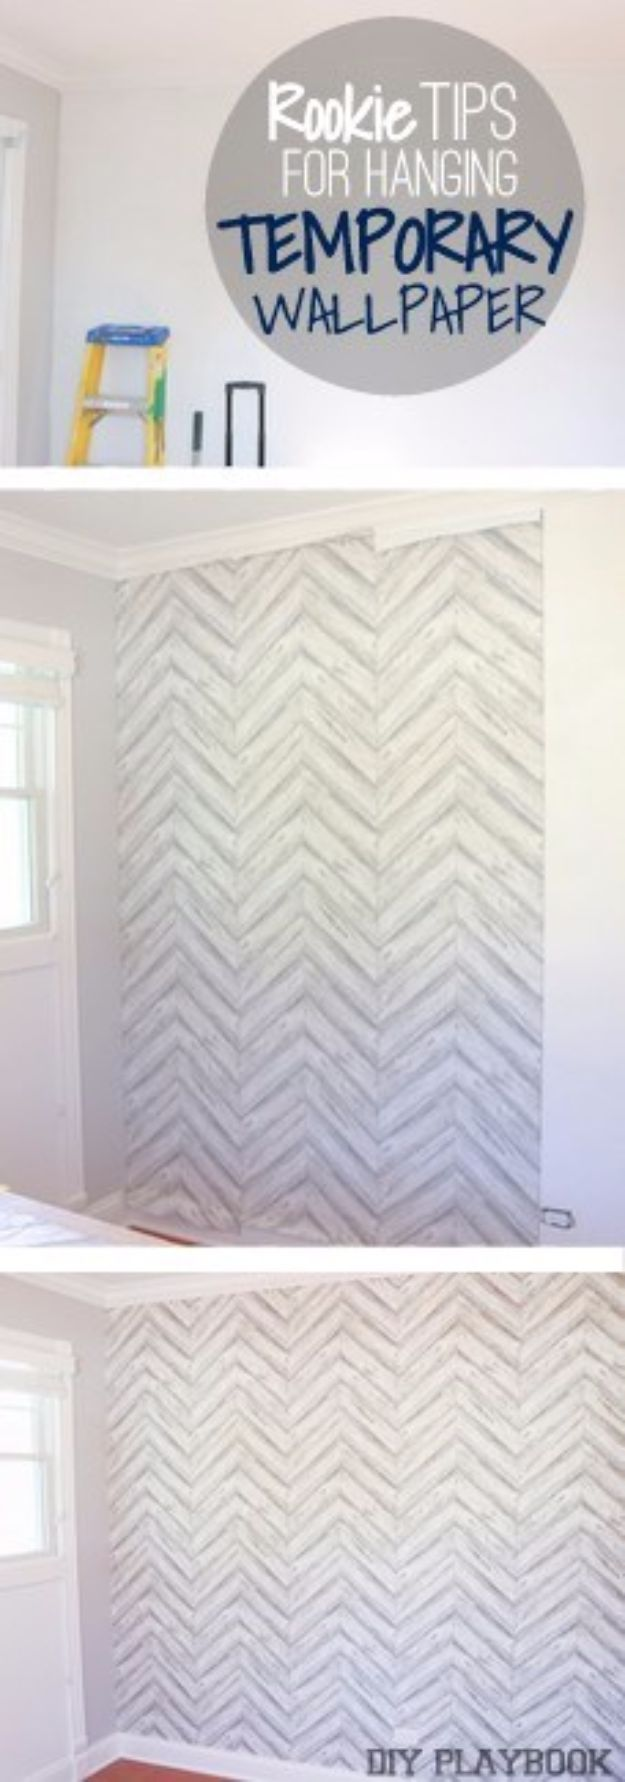 DIY Hacks for Renters - Temporary Wallpapers - Easy Ways to Decorate and Fix Things on Rental Property - Decorate Walls, Cheap Ideas for Making an Apartment, Small Space or Tiny Closet Work For You - Quick Hacks and DIY Projects on A Budget - Step by Step Tutorials and Instructions for Simple Home Decor http://diyjoy.com/diy-hacks-renters